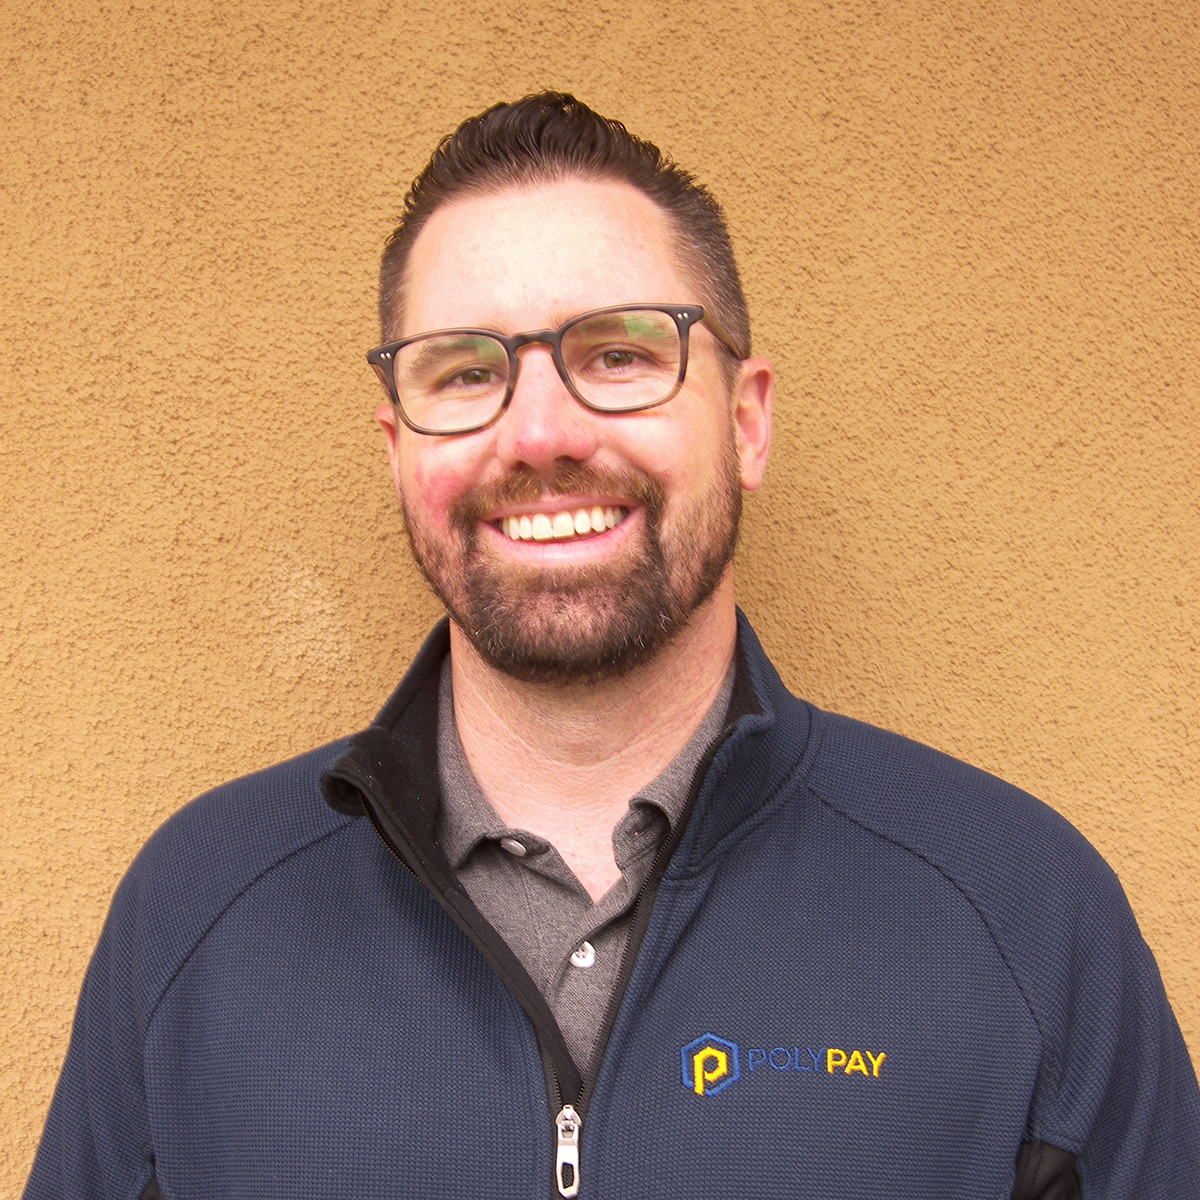 "Ross Sprague   Ross Sprague joined PolyPay in February of 2017. Ross brings a background of accounting, finance, management and national sales experience to his role as Vice President of Sales for PolyPay.  Ross grew up in Coalinga, a small town in the Central Valley of California where he was taught to be a man of his word and that a handshake still means something. Ross attended California State University Fresno where he graduated with a Bachelor of Science in Accountancy. During his years at Fresno State, Ross was a walk-on for the Bulldogs Football team playing as a Safety and threw the Javelin for the Bulldogs Track and Field team.  Upon graduation from college, Ross began his professional career working as a Registered Investment Advisor in Fresno in January of 2008. Ross then moved to San Luis Obispo in 2009 where he helped manage Firestone Grill for 4 years. In 2013, Ross joined Gibson Enterprises, a national manufacturer of consumer goods, where he worked his way up from an Account Executive to Vice President of National Sales, selling to some of the largest retailers in the world.  At PolyPay, Ross enjoys taking what is often a ""pain point"" of their business and making merchant processing something that business owners can understand and feel comfortable with going forward. In an industry rife with a lack of transparency, confusion can lead merchants to become discouraged and taken advantage of; it does not have to be that way and it is not with Ross and PolyPay.  Ross currently lives in San Luis Obispo with his wife Chelsea. Ross enjoys his free time with lots of backyard BBQs, riding his road bike around San Luis Obispo County and hiking the local hills with their dog Lucy."